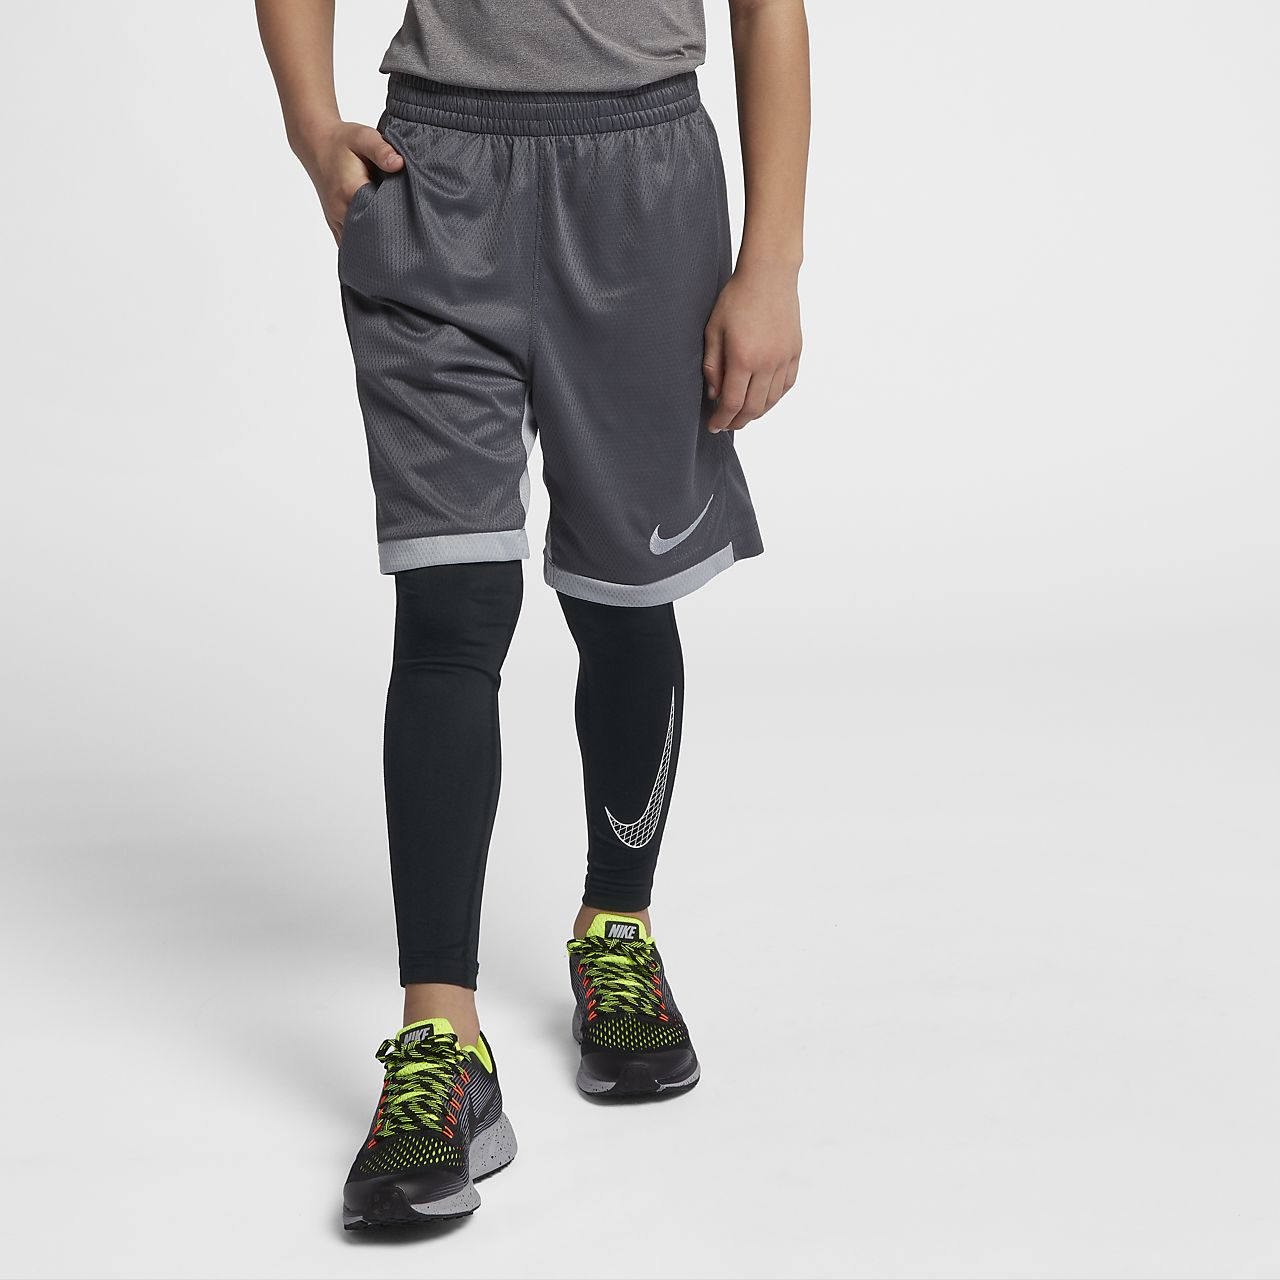 cheaper 45347 a165c ... Nike Pro Big Kids  (Boys ) Training Tights